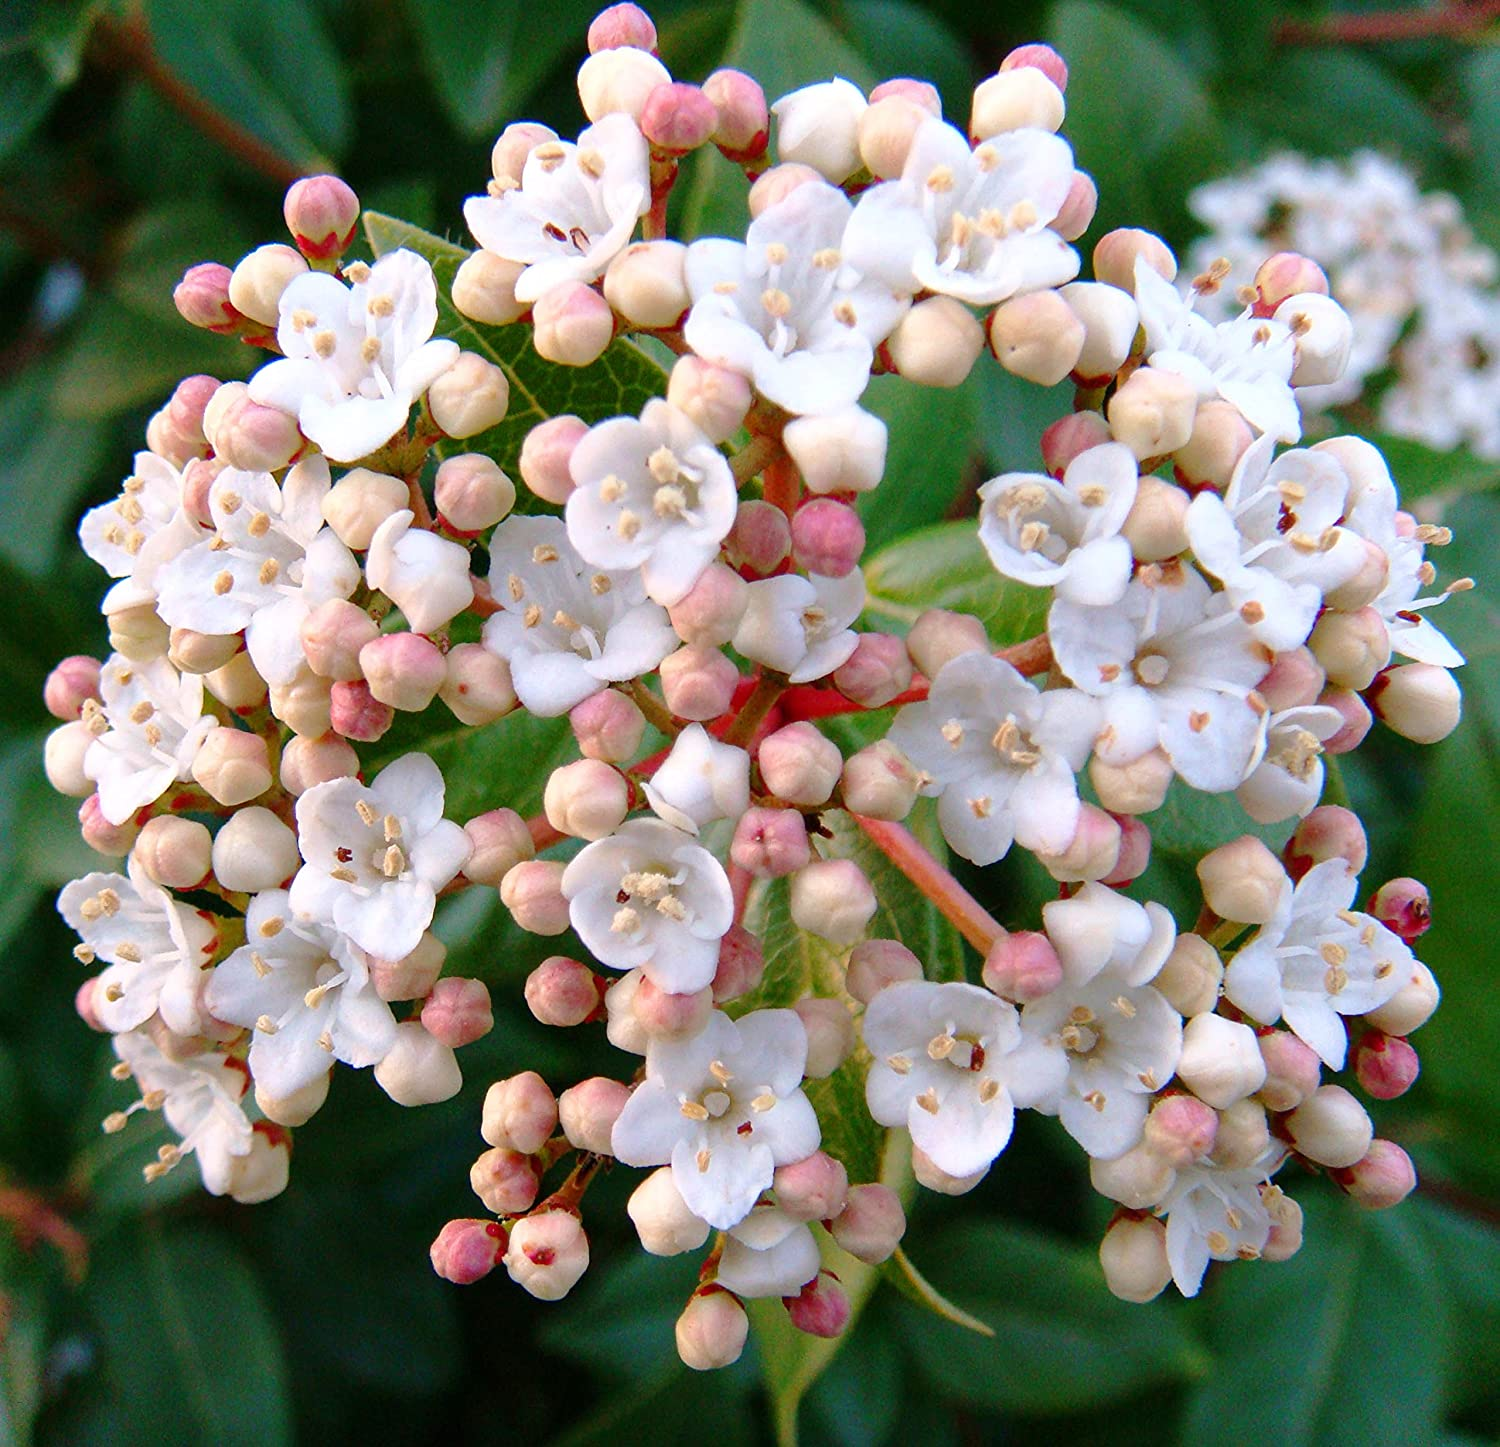 Spring Bouquet Viburnum- A beautiful, low-growing plant with dark green foliage and lightly fragrant, pinkish white spring flowers